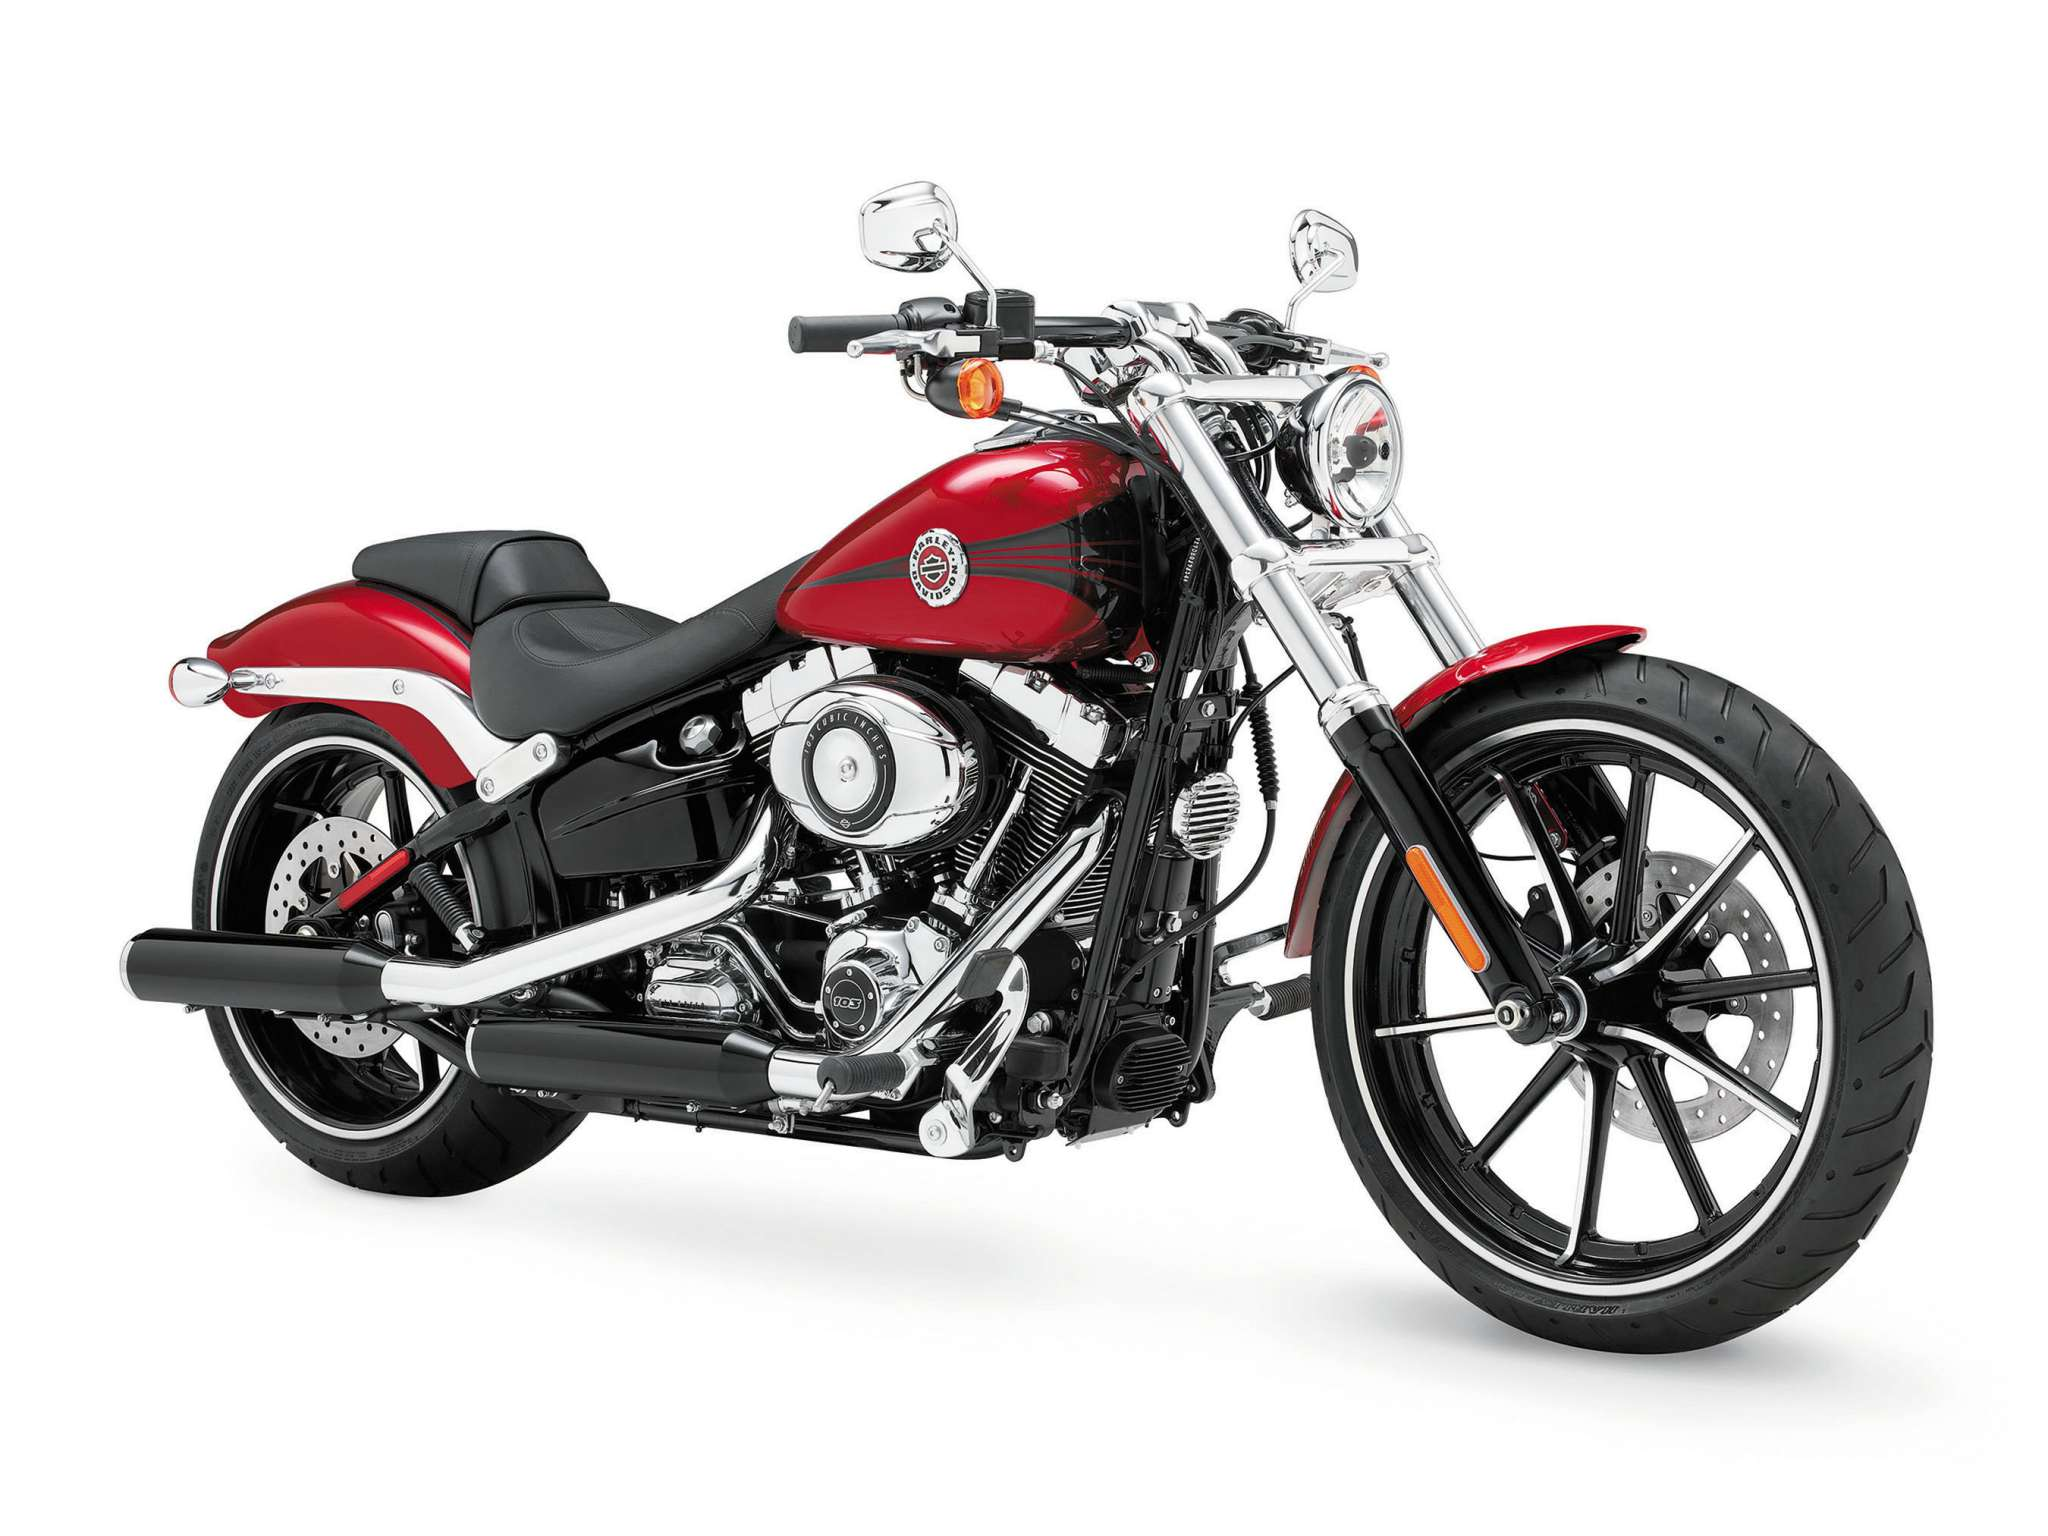 2013 harley davidson motorcycle models at total motorcycle